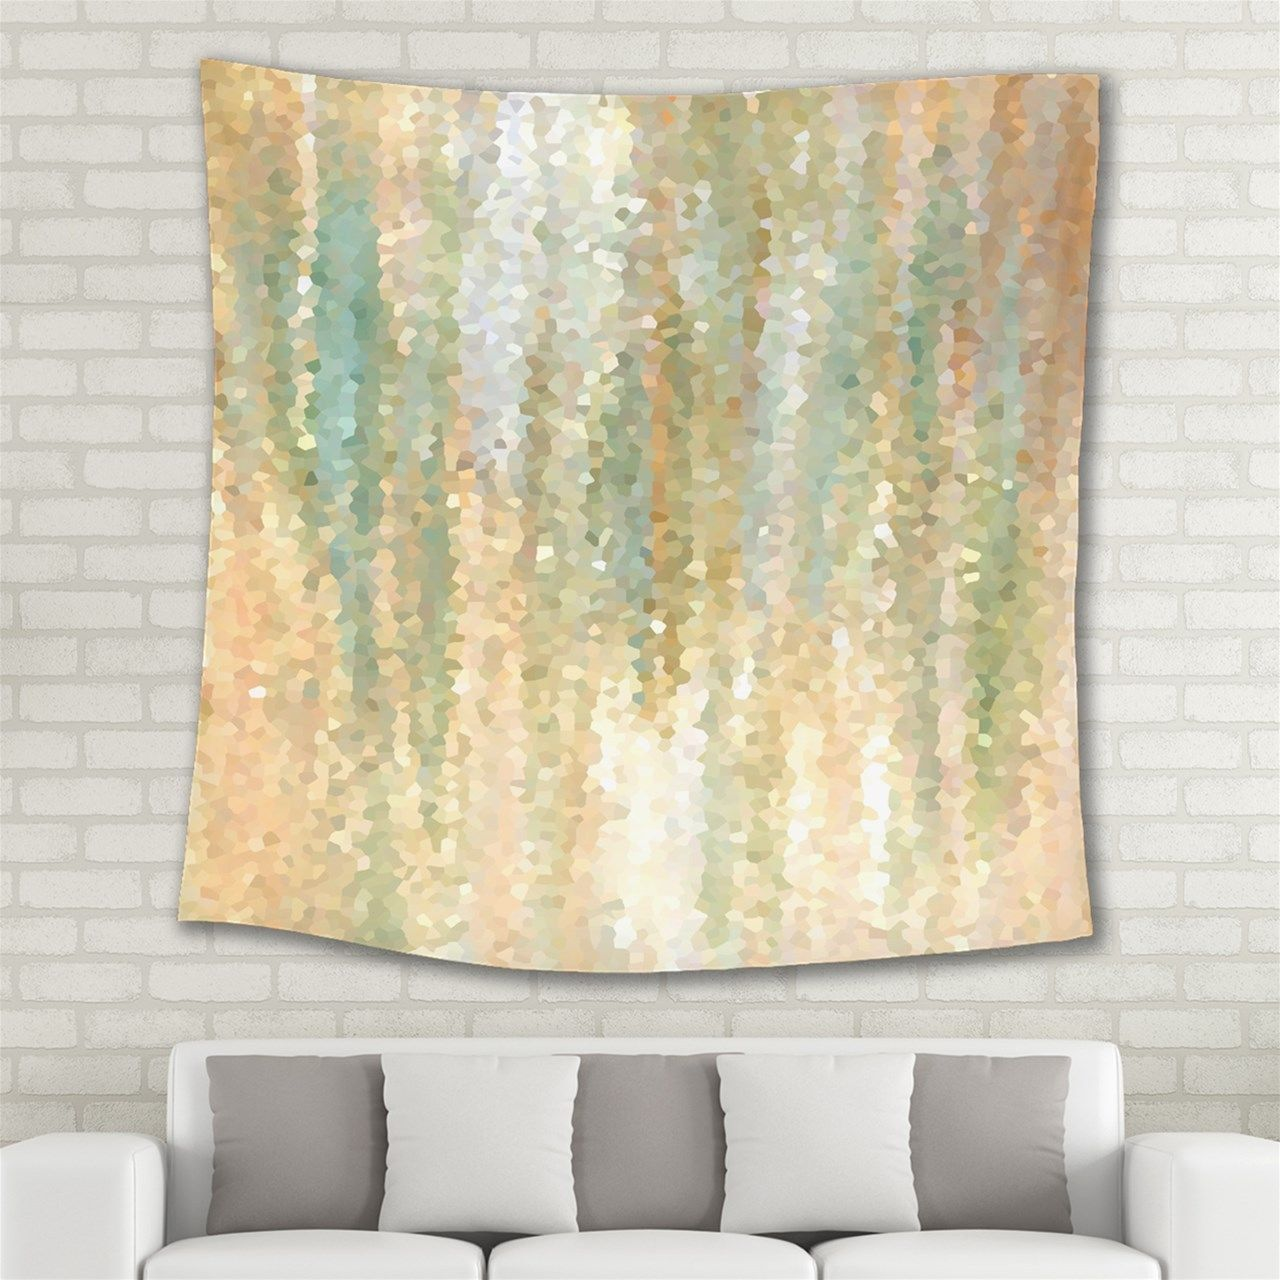 Wall Tapestry Wall Hanging Home Decor Design 30 Tan Beige Peach ...